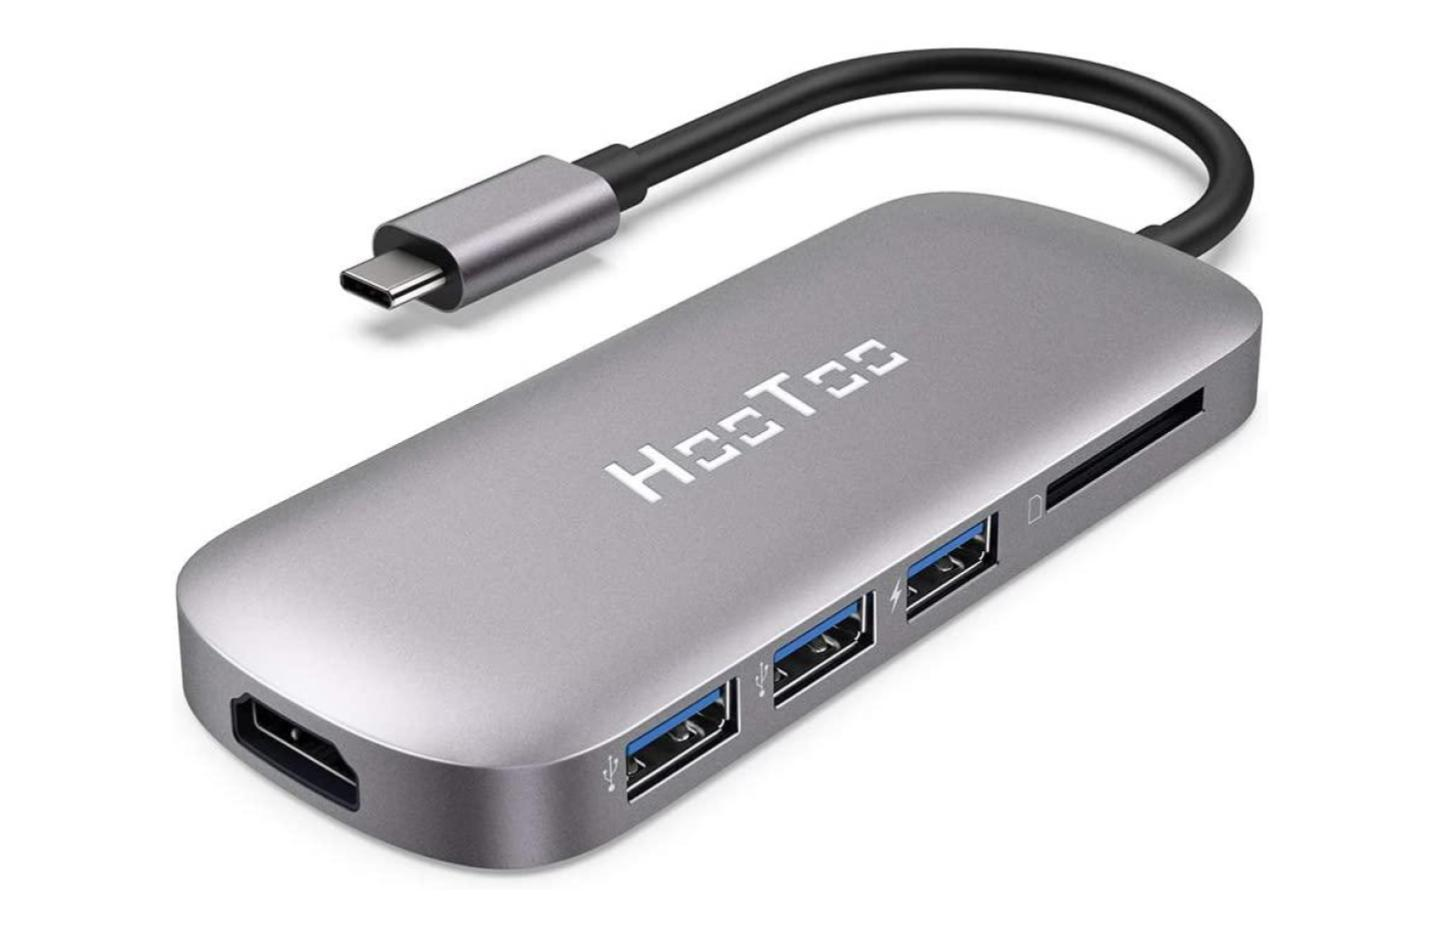 L'excellent hub USB-C de HooToo profite d'une réduction de 25 % sur Amazon